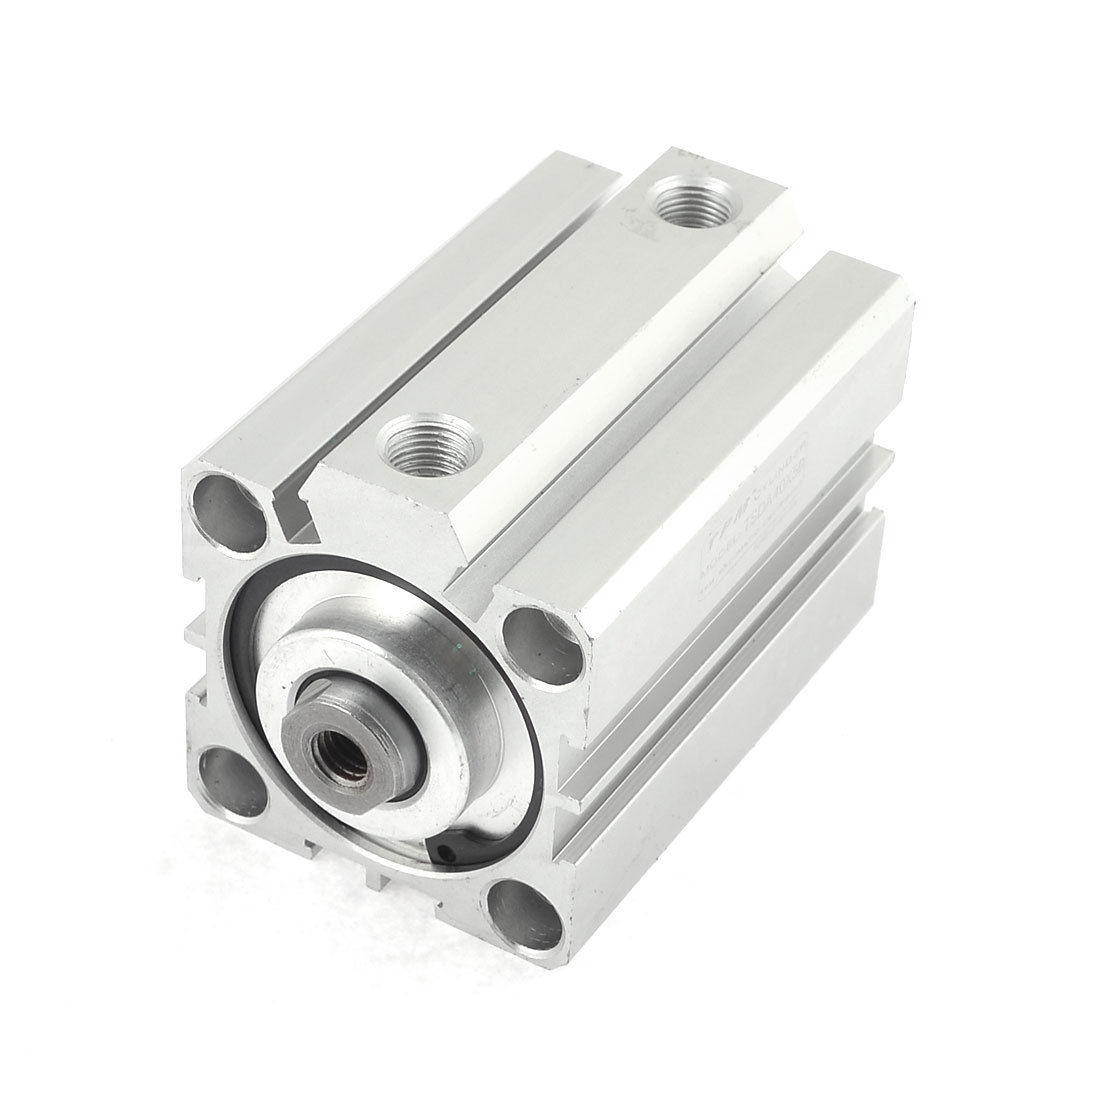 1 Pcs 40mm Bore 100mm Stroke Stainless steel Pneumatic Air Cylinder SDA40-1001 Pcs 40mm Bore 100mm Stroke Stainless steel Pneumatic Air Cylinder SDA40-100